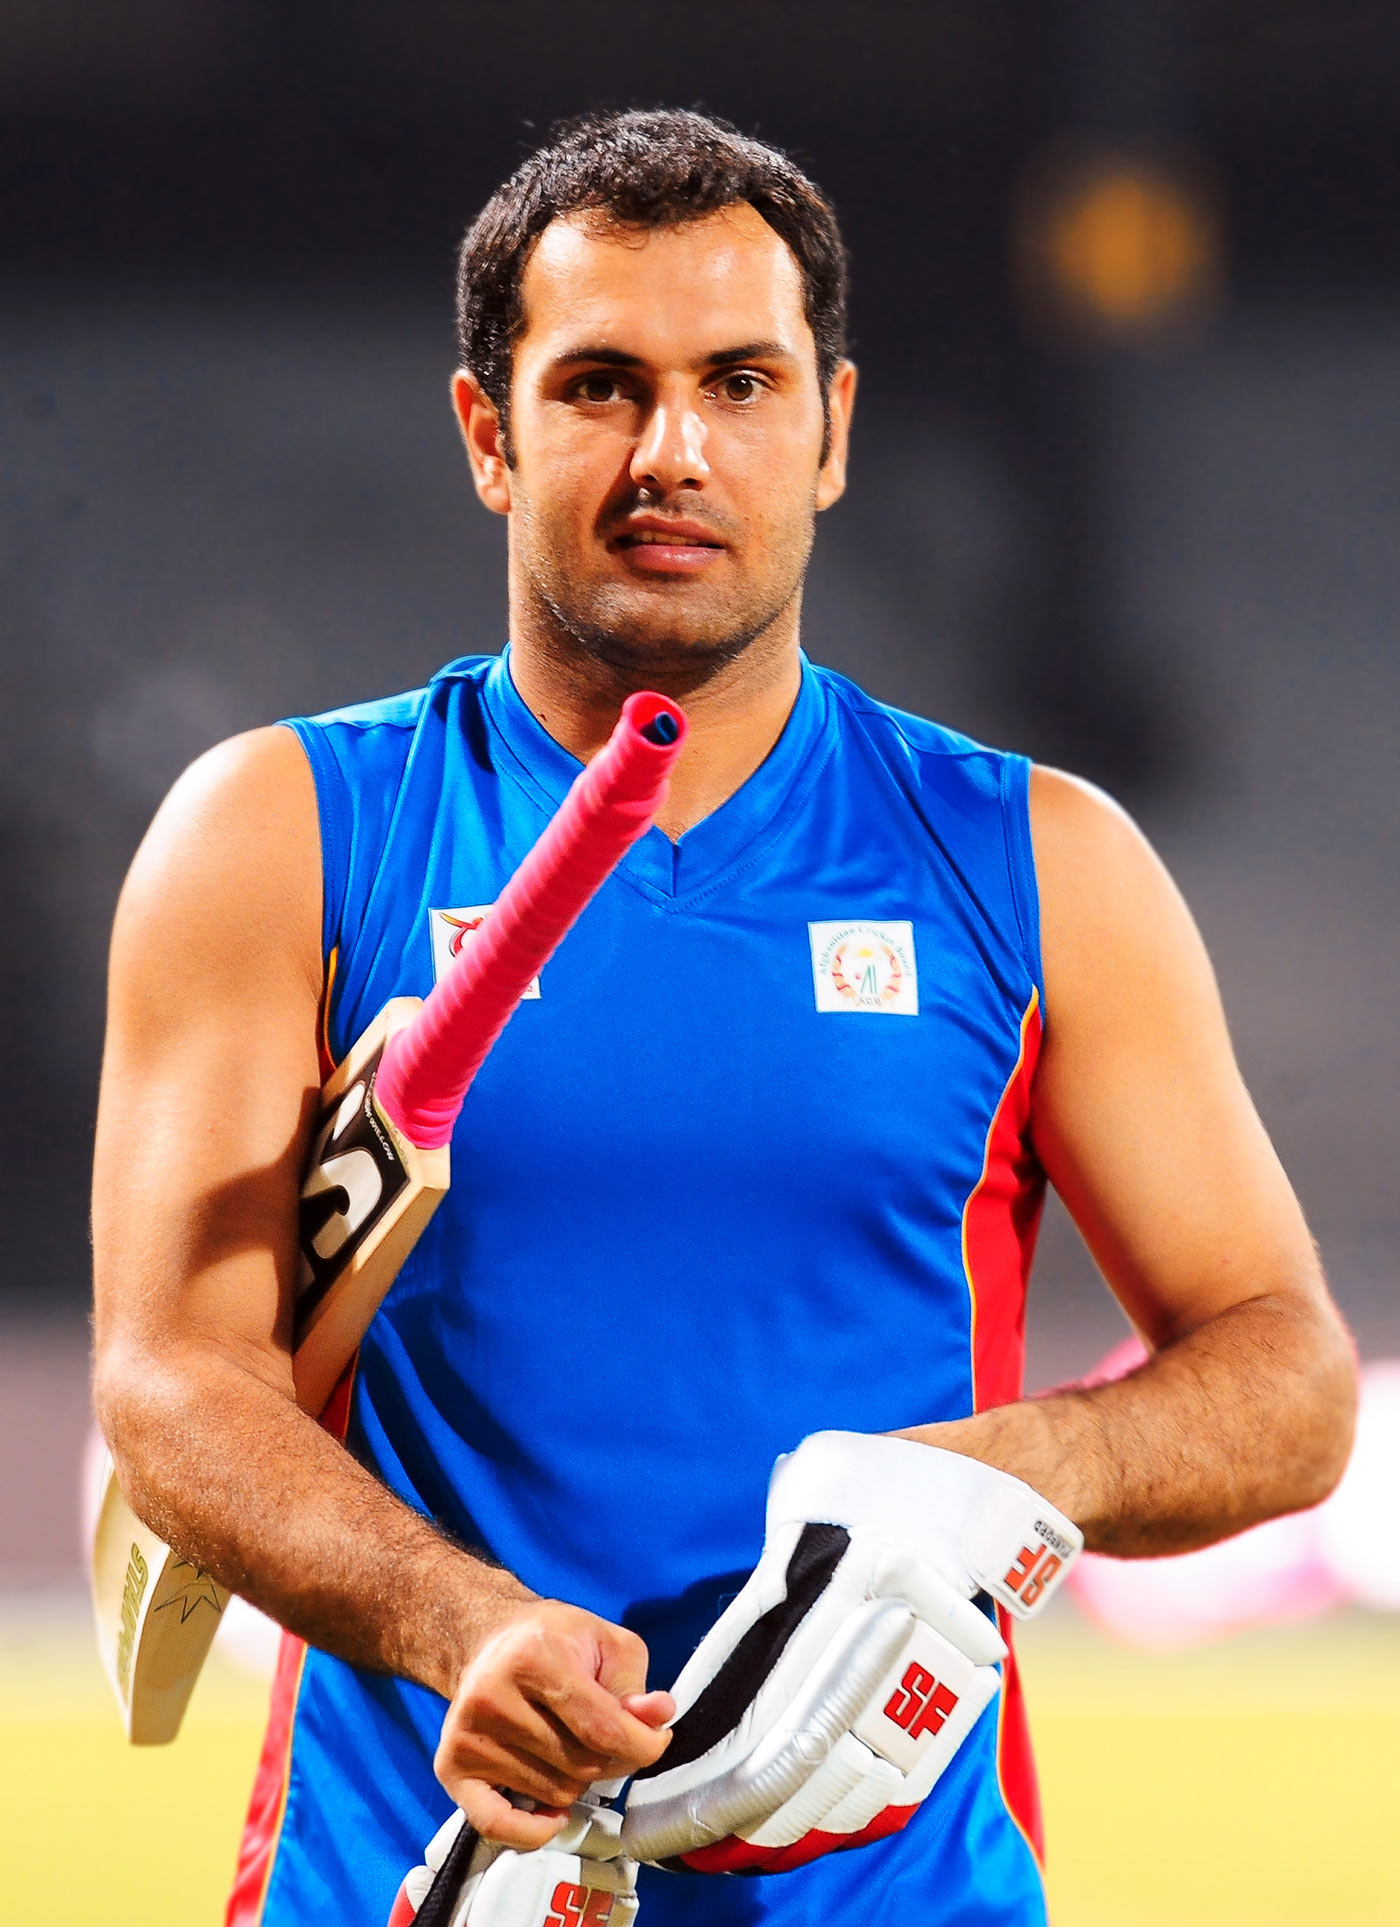 Mohammad Nabi, a senior statesman of Afghanistan cricket at 29, made his first-class debut playing for MCC